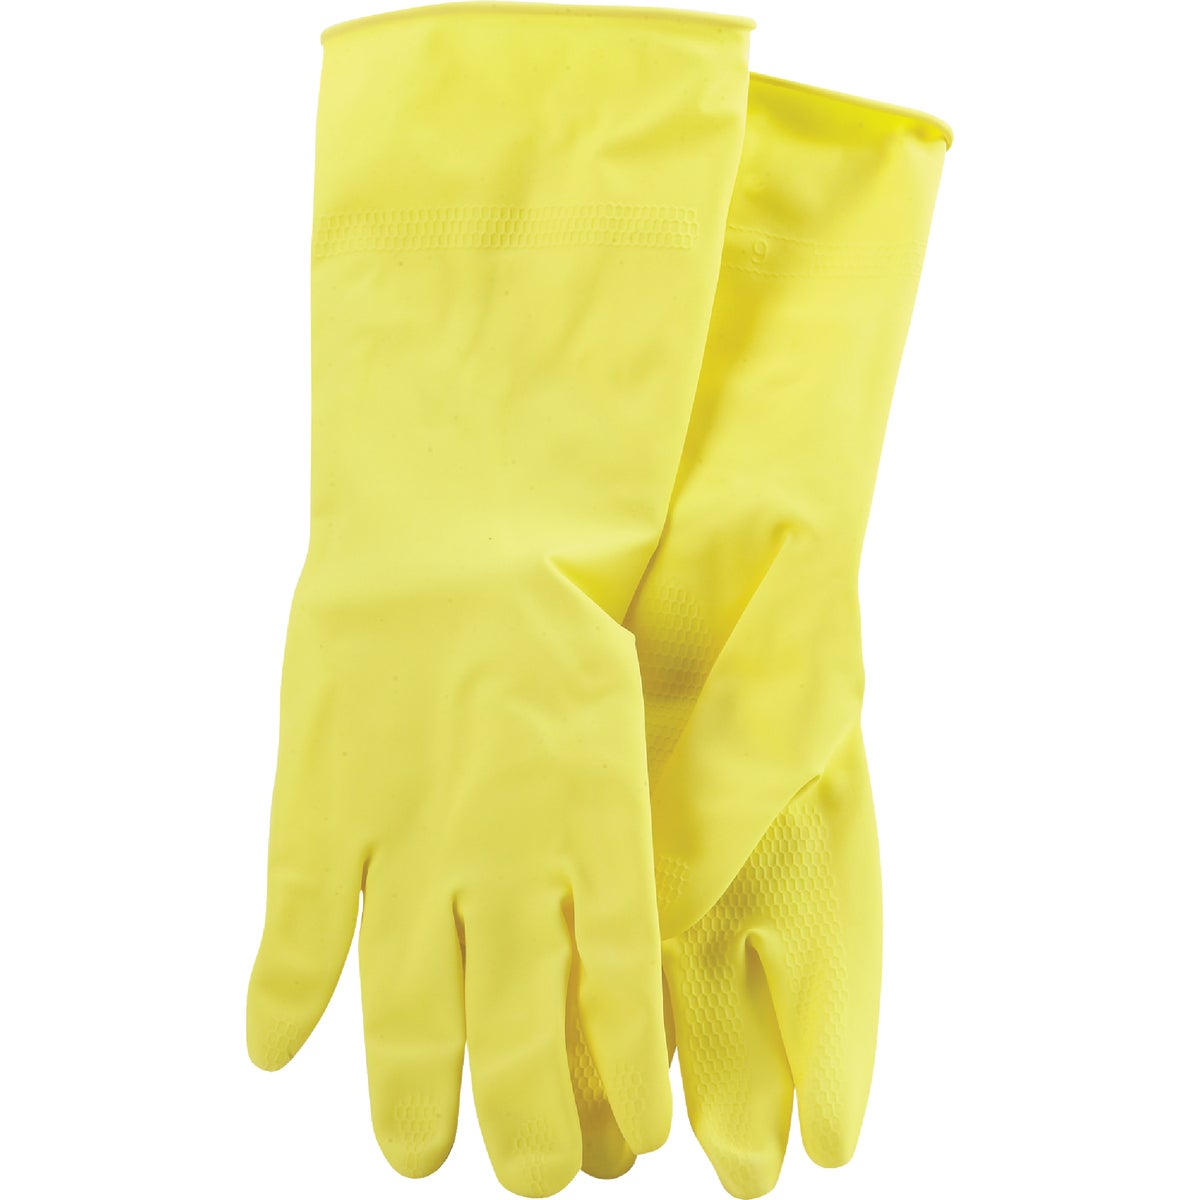 MEDIUM LATEX GLOVES - 624729 by Do it Best